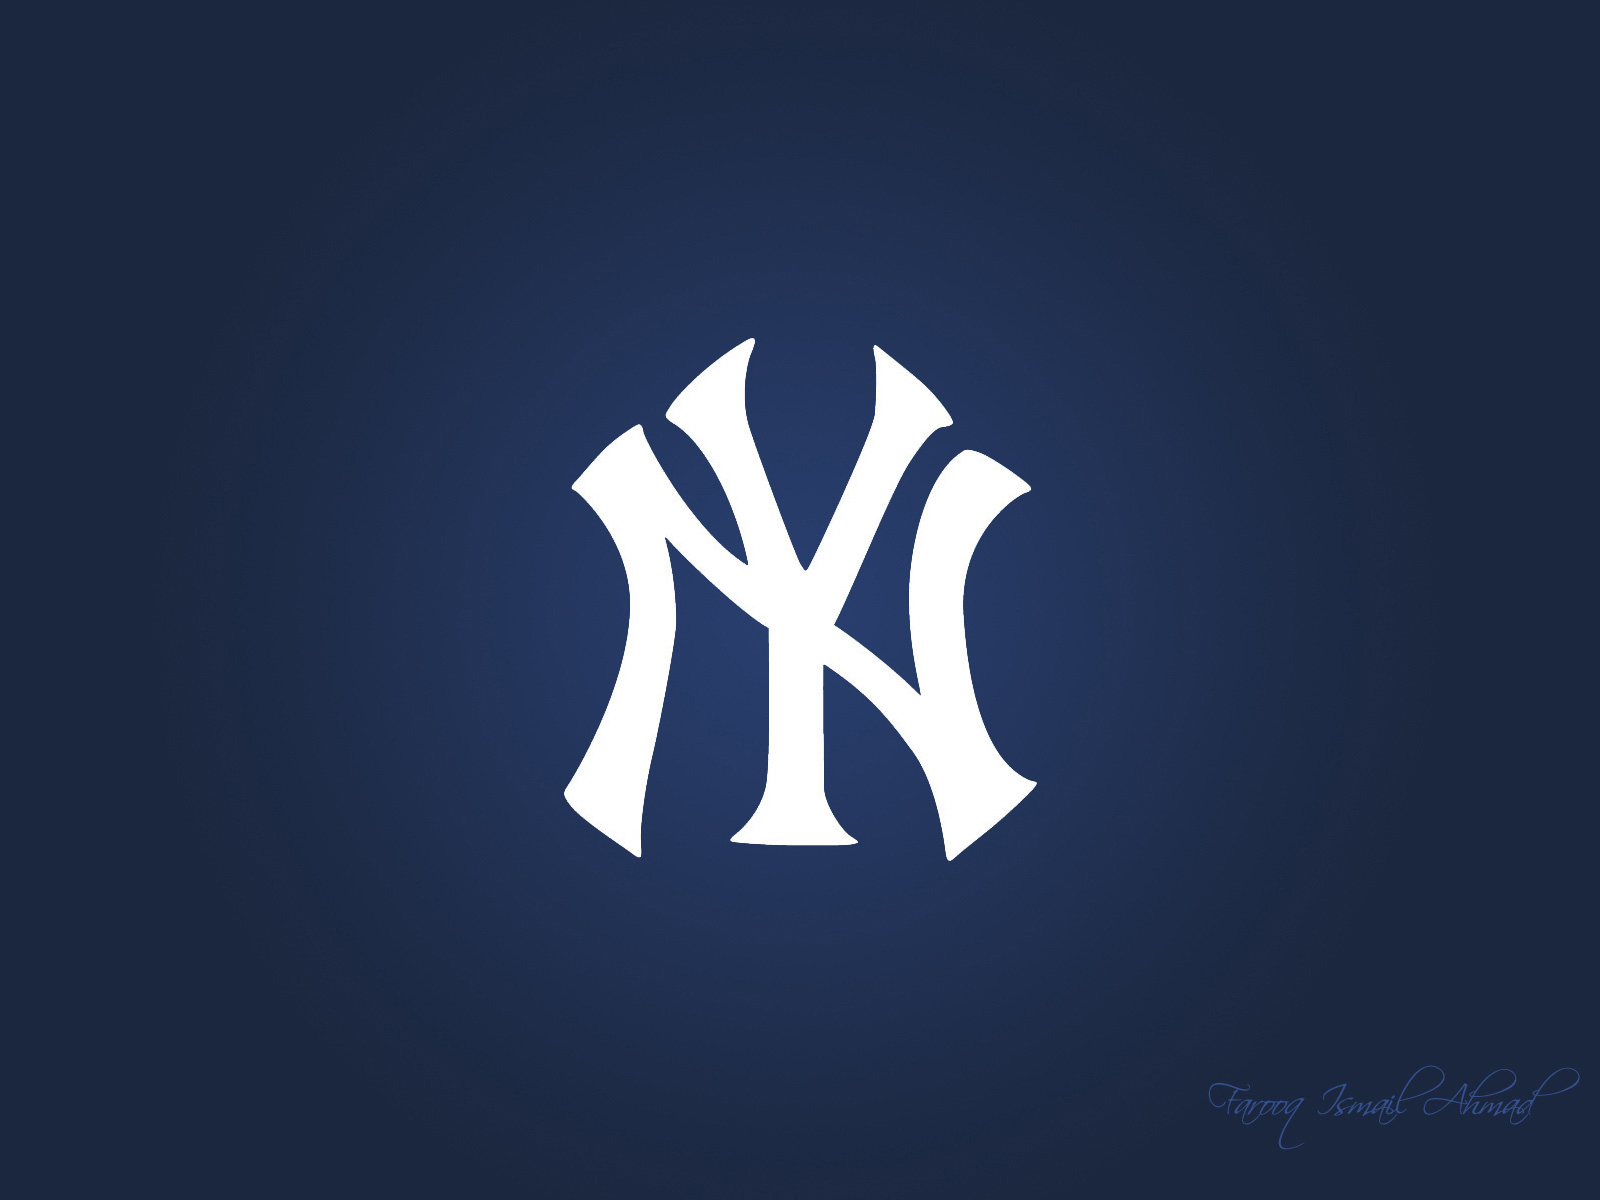 New York Yankees widescreen for desktop